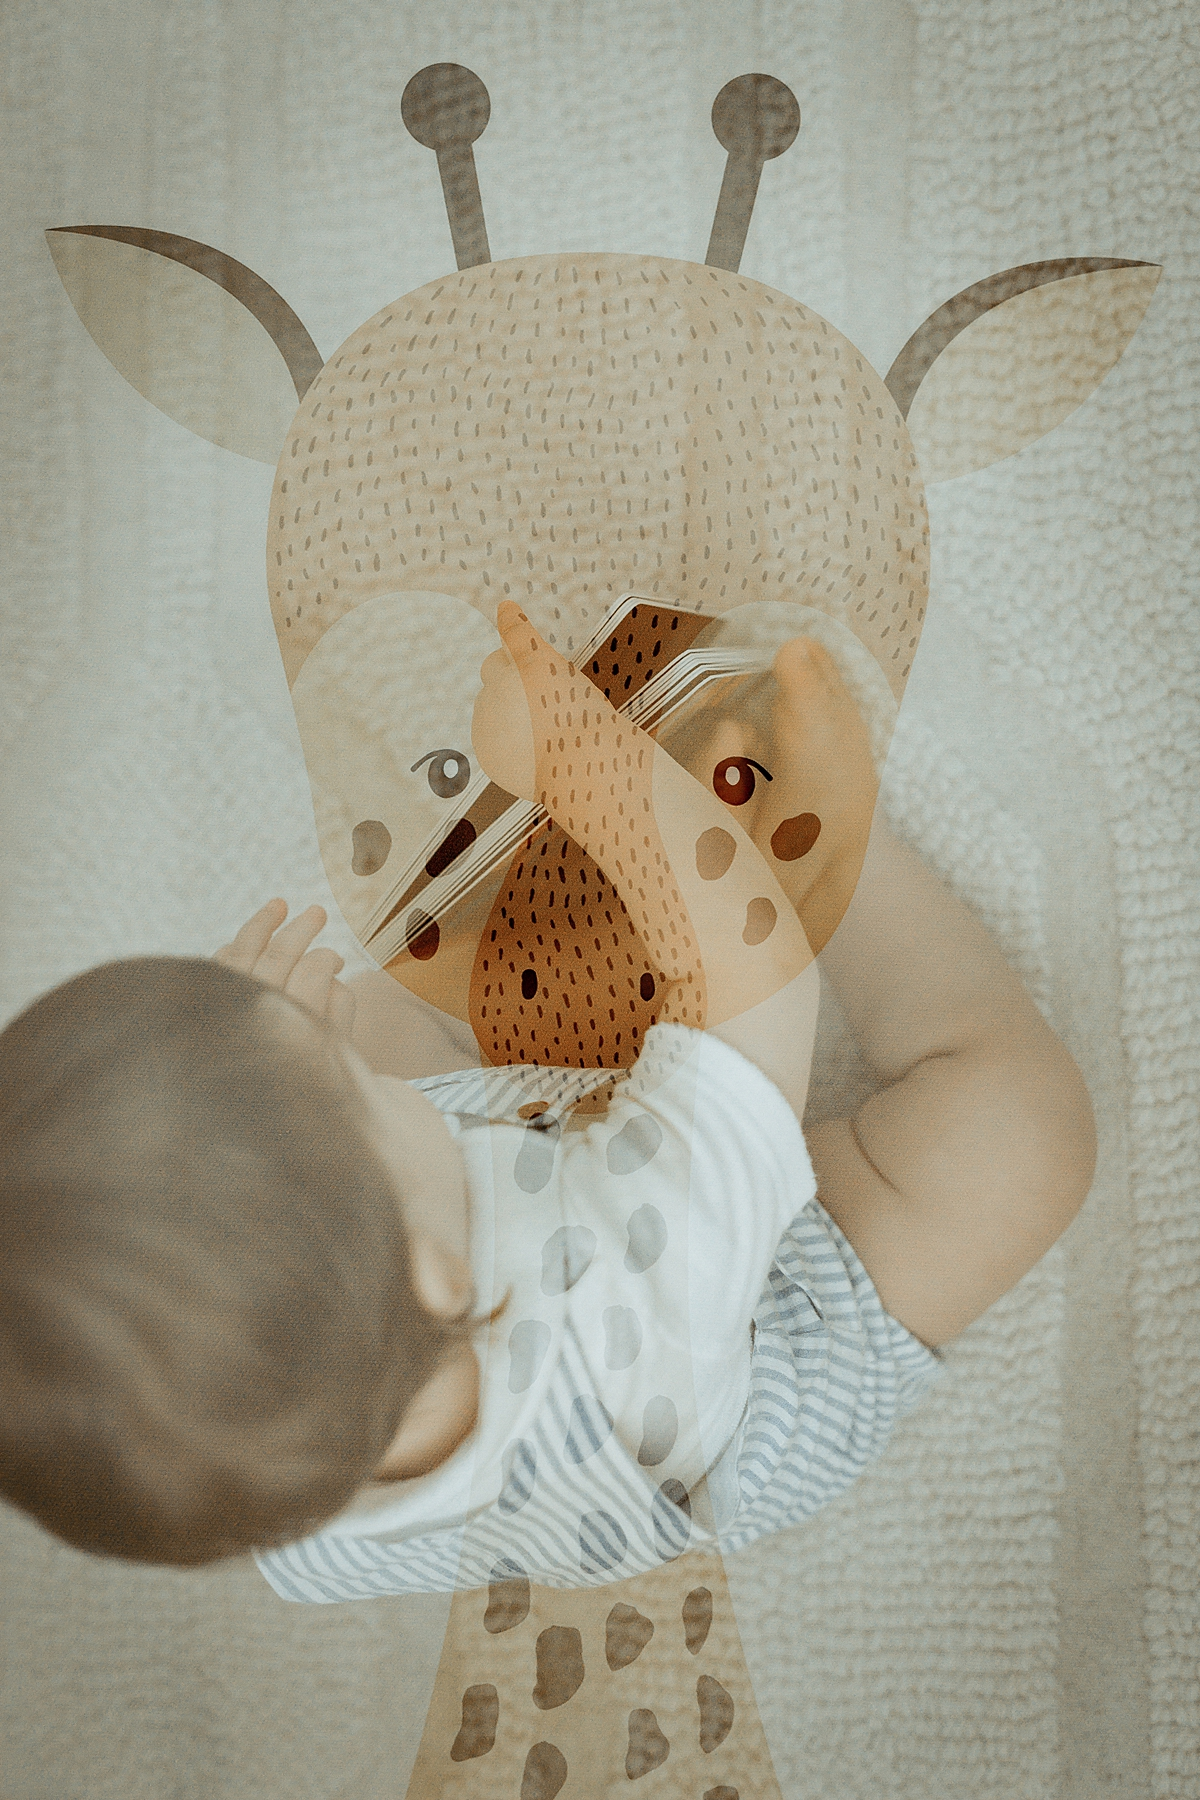 Orange County family photographer. Double exposure photo of one year old boy with his book and giraffe wall hanging taken during in family photo session in Irvine CA